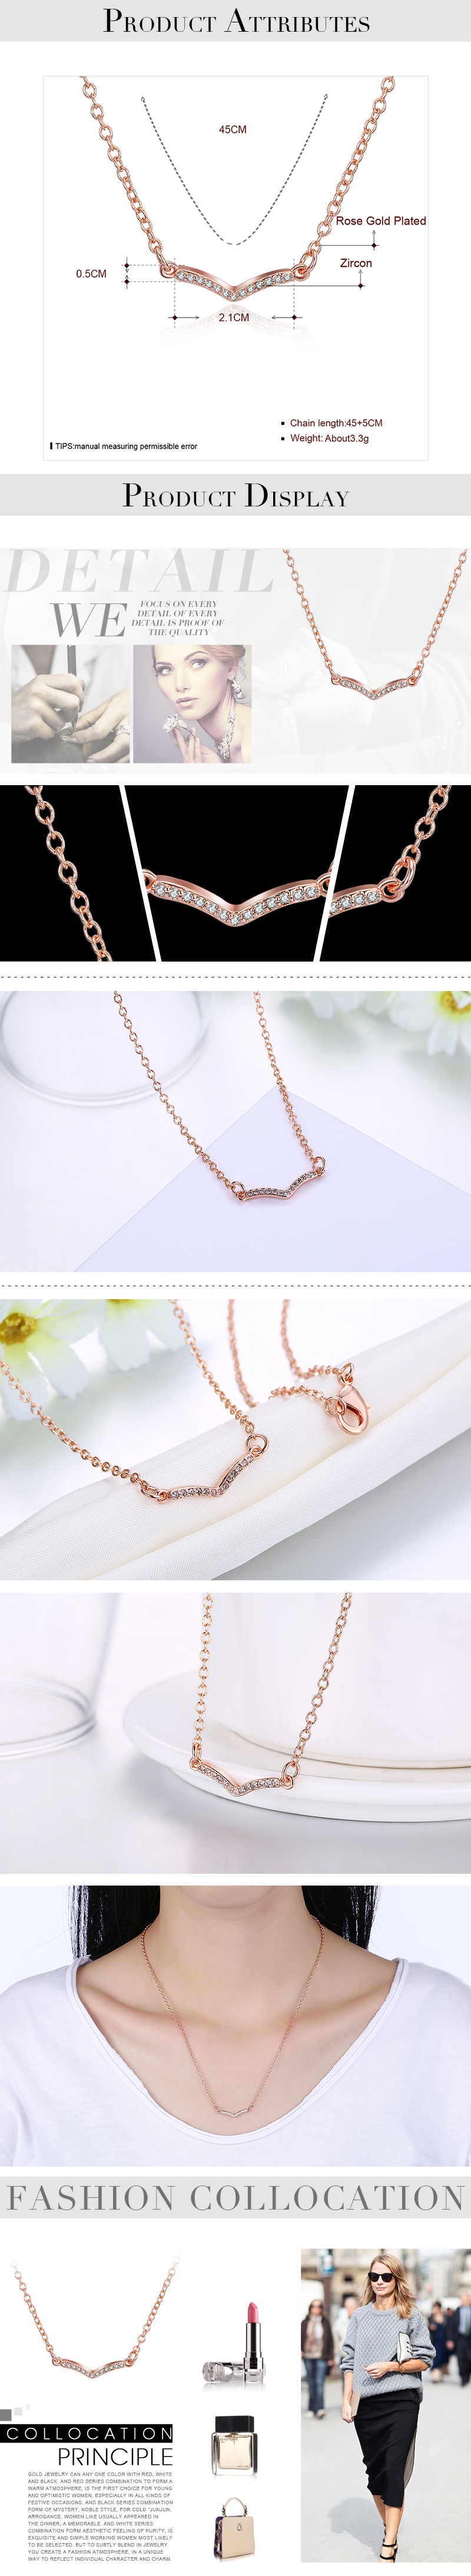 Necklaces NHKL12299